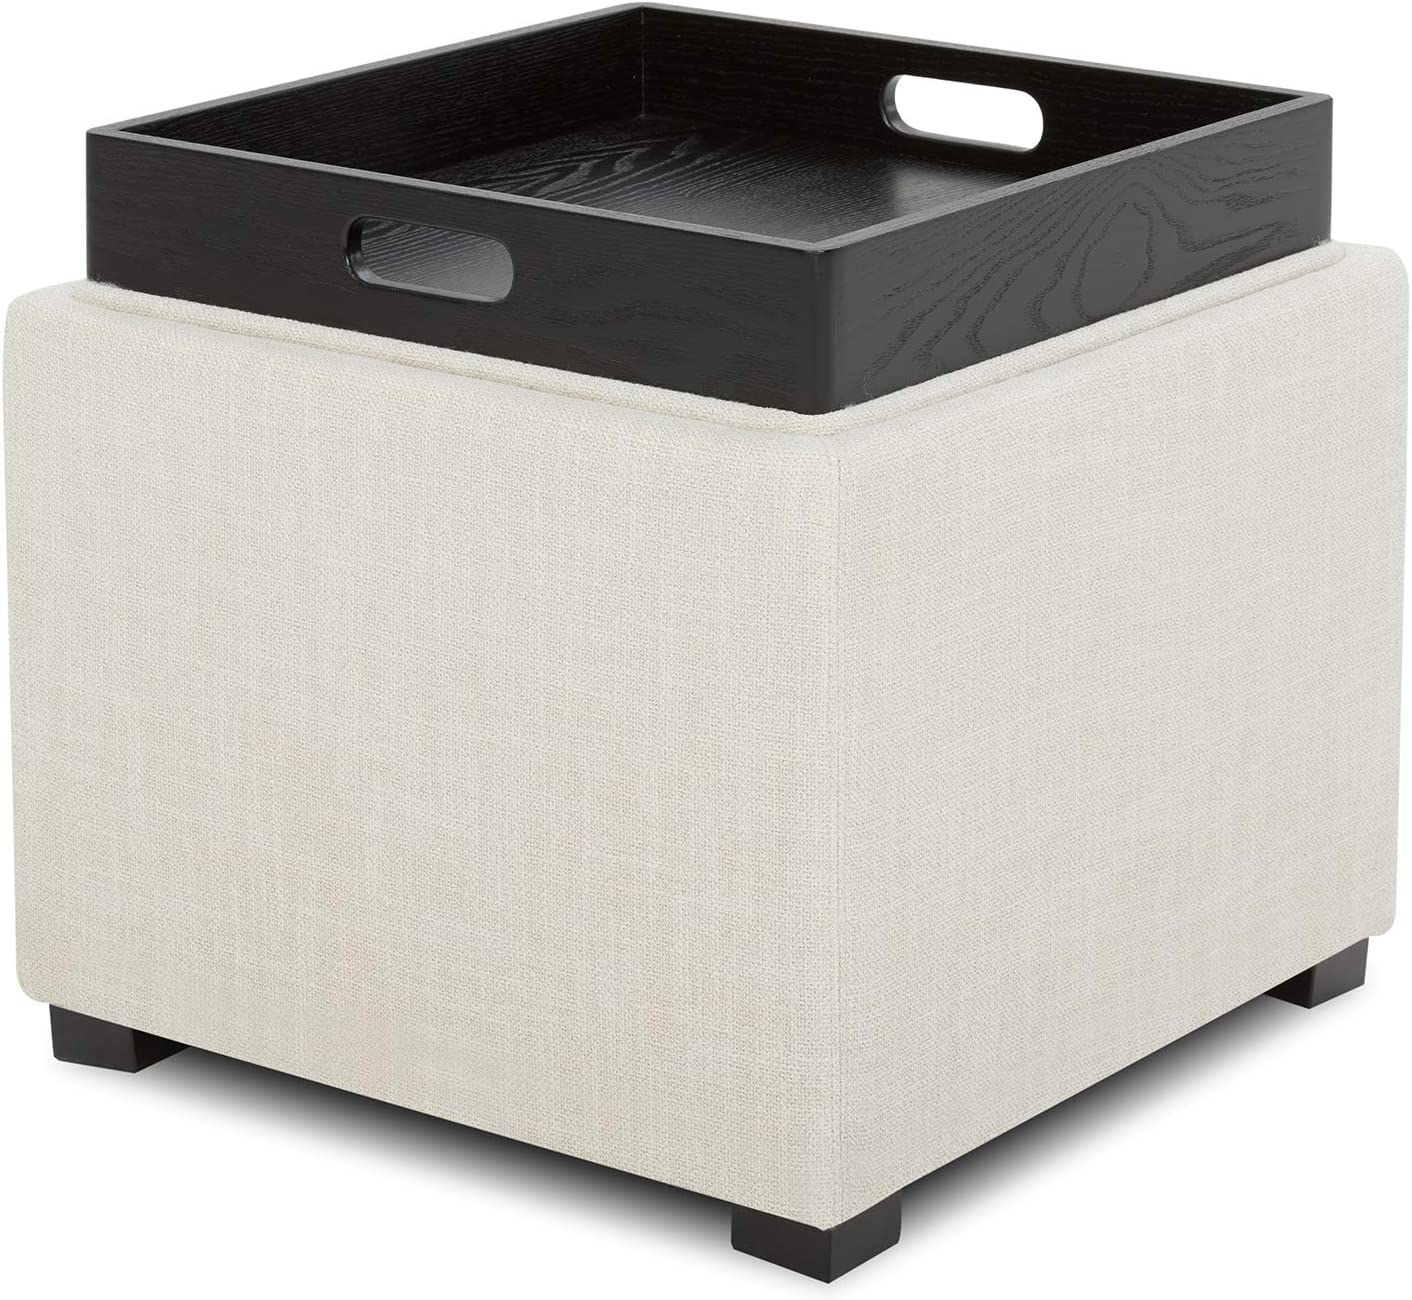 CHITA Fabric Storage Ottoman Cube Seat Footrest as Sale Selling rankings Special Price Serve Stool